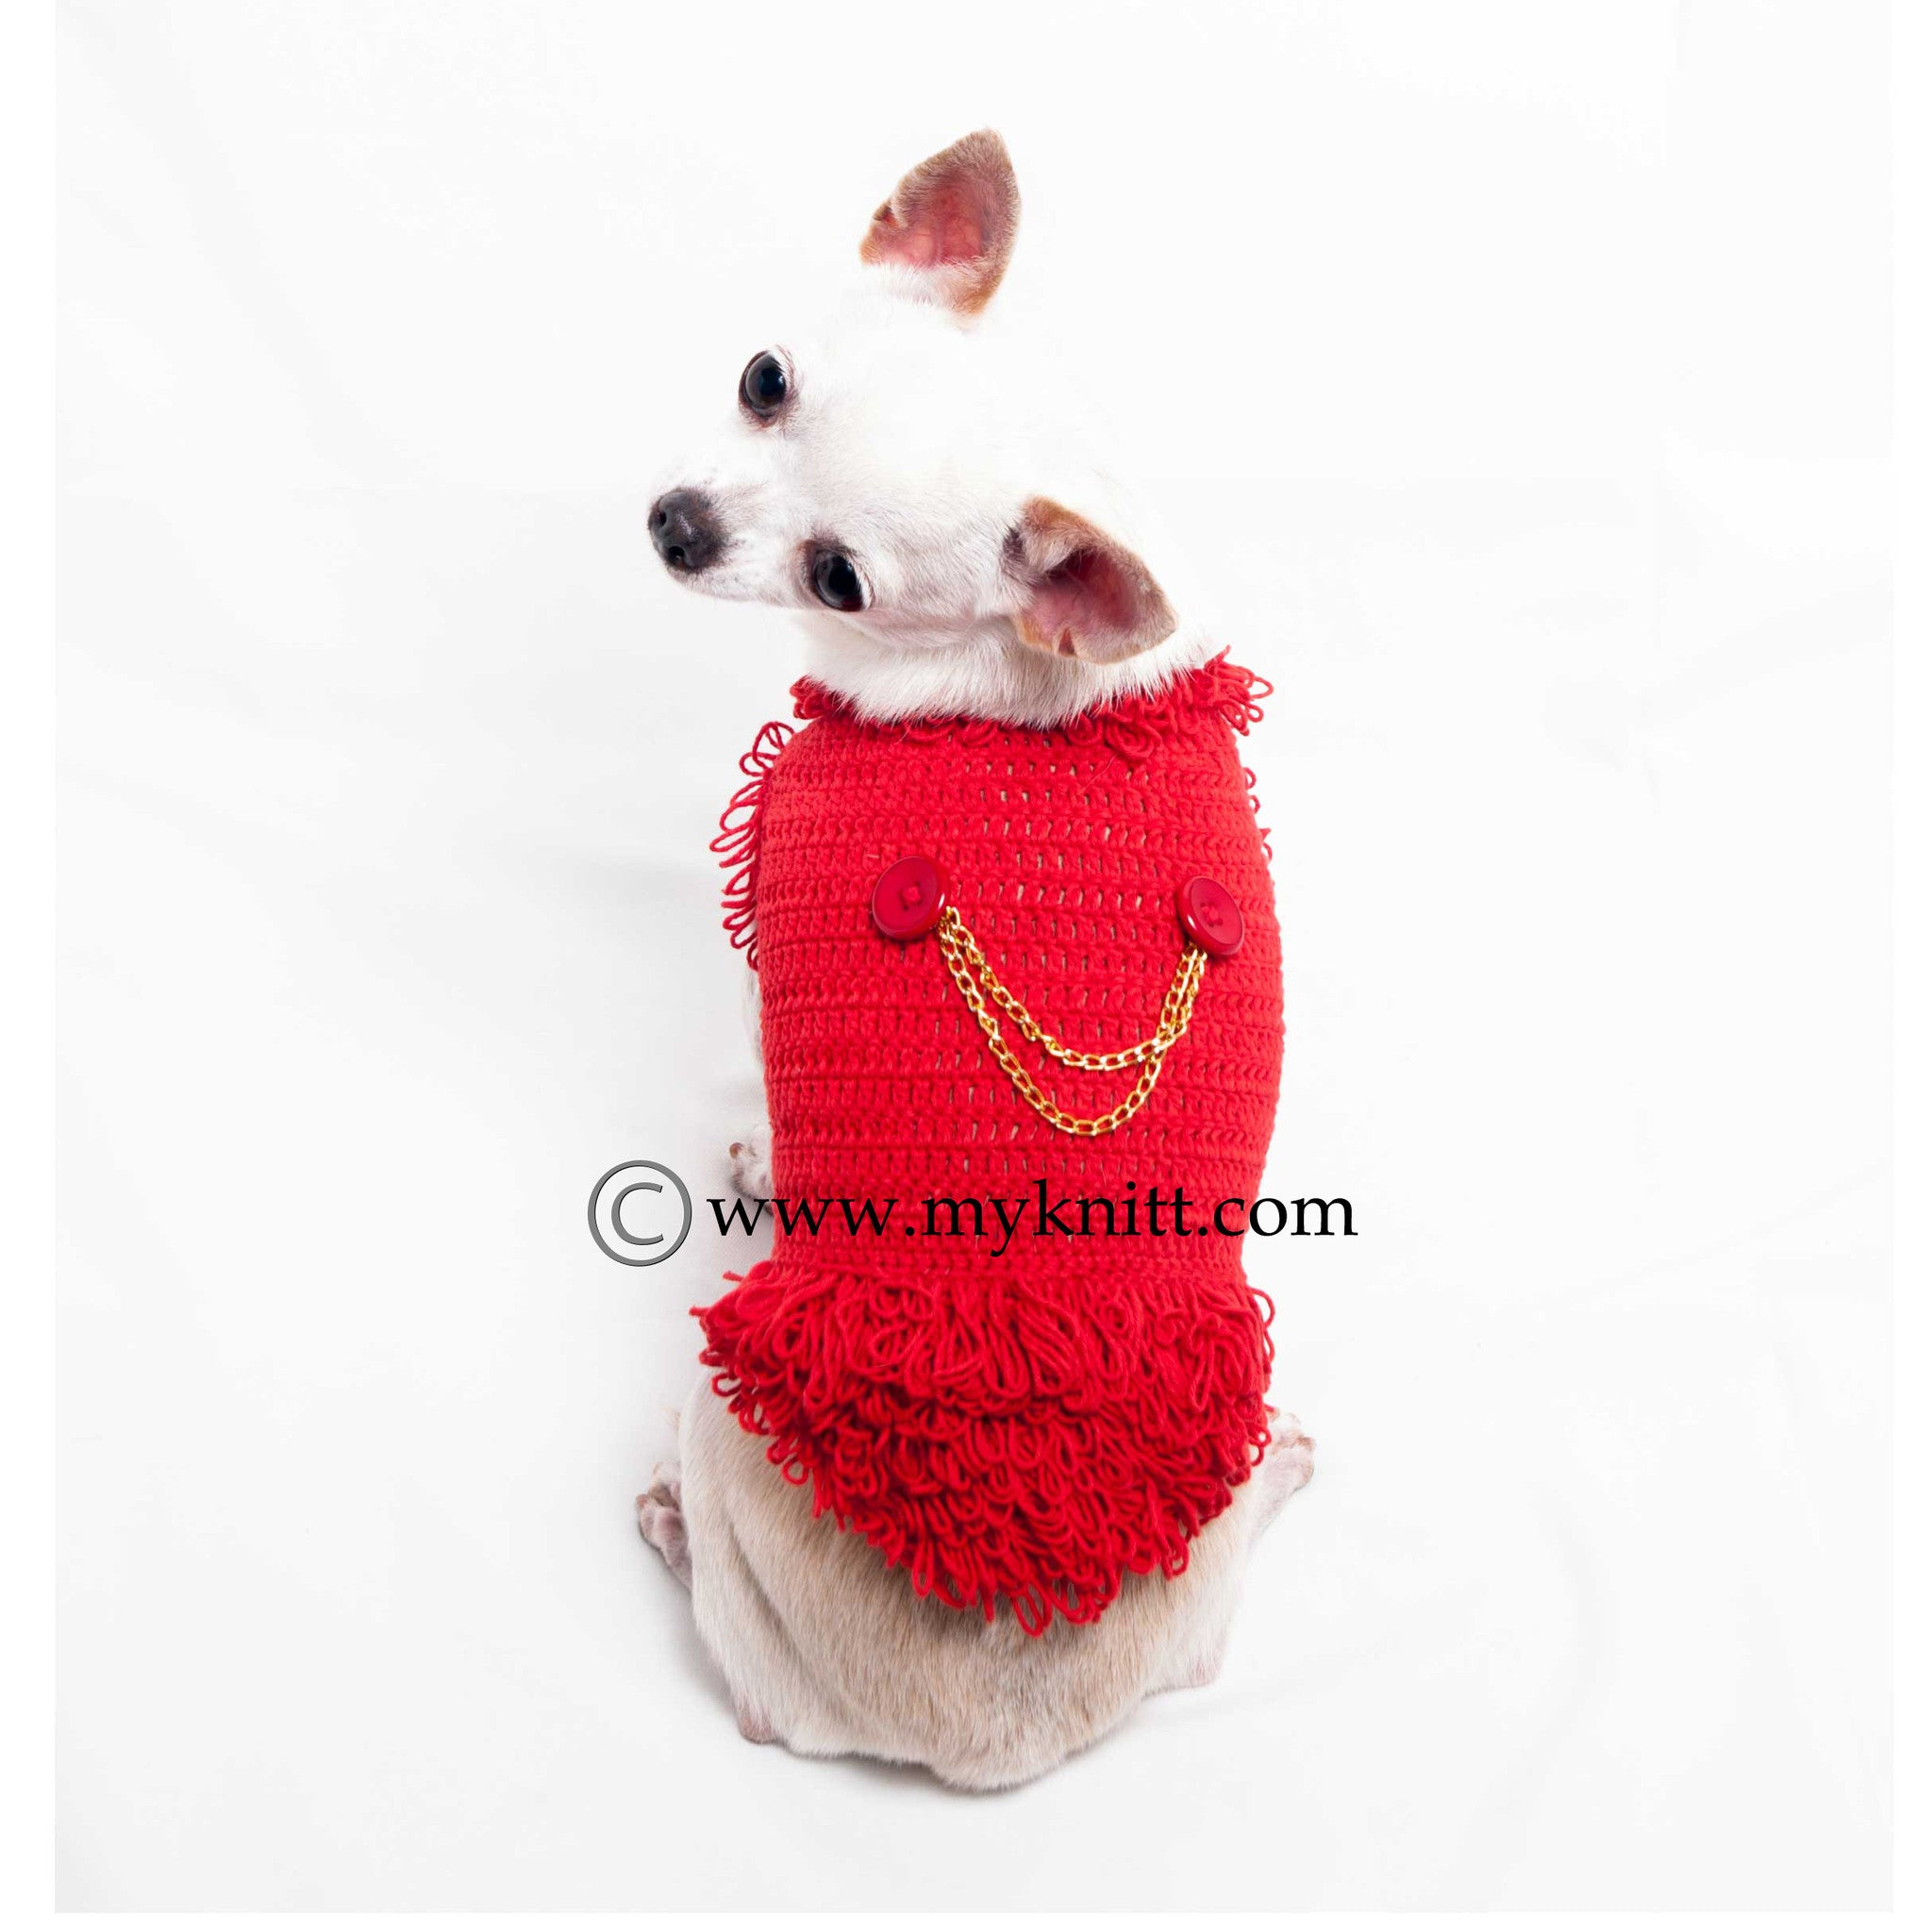 Michael Jackson Dog Costumes King Of Pop Dresses Crochet DF39